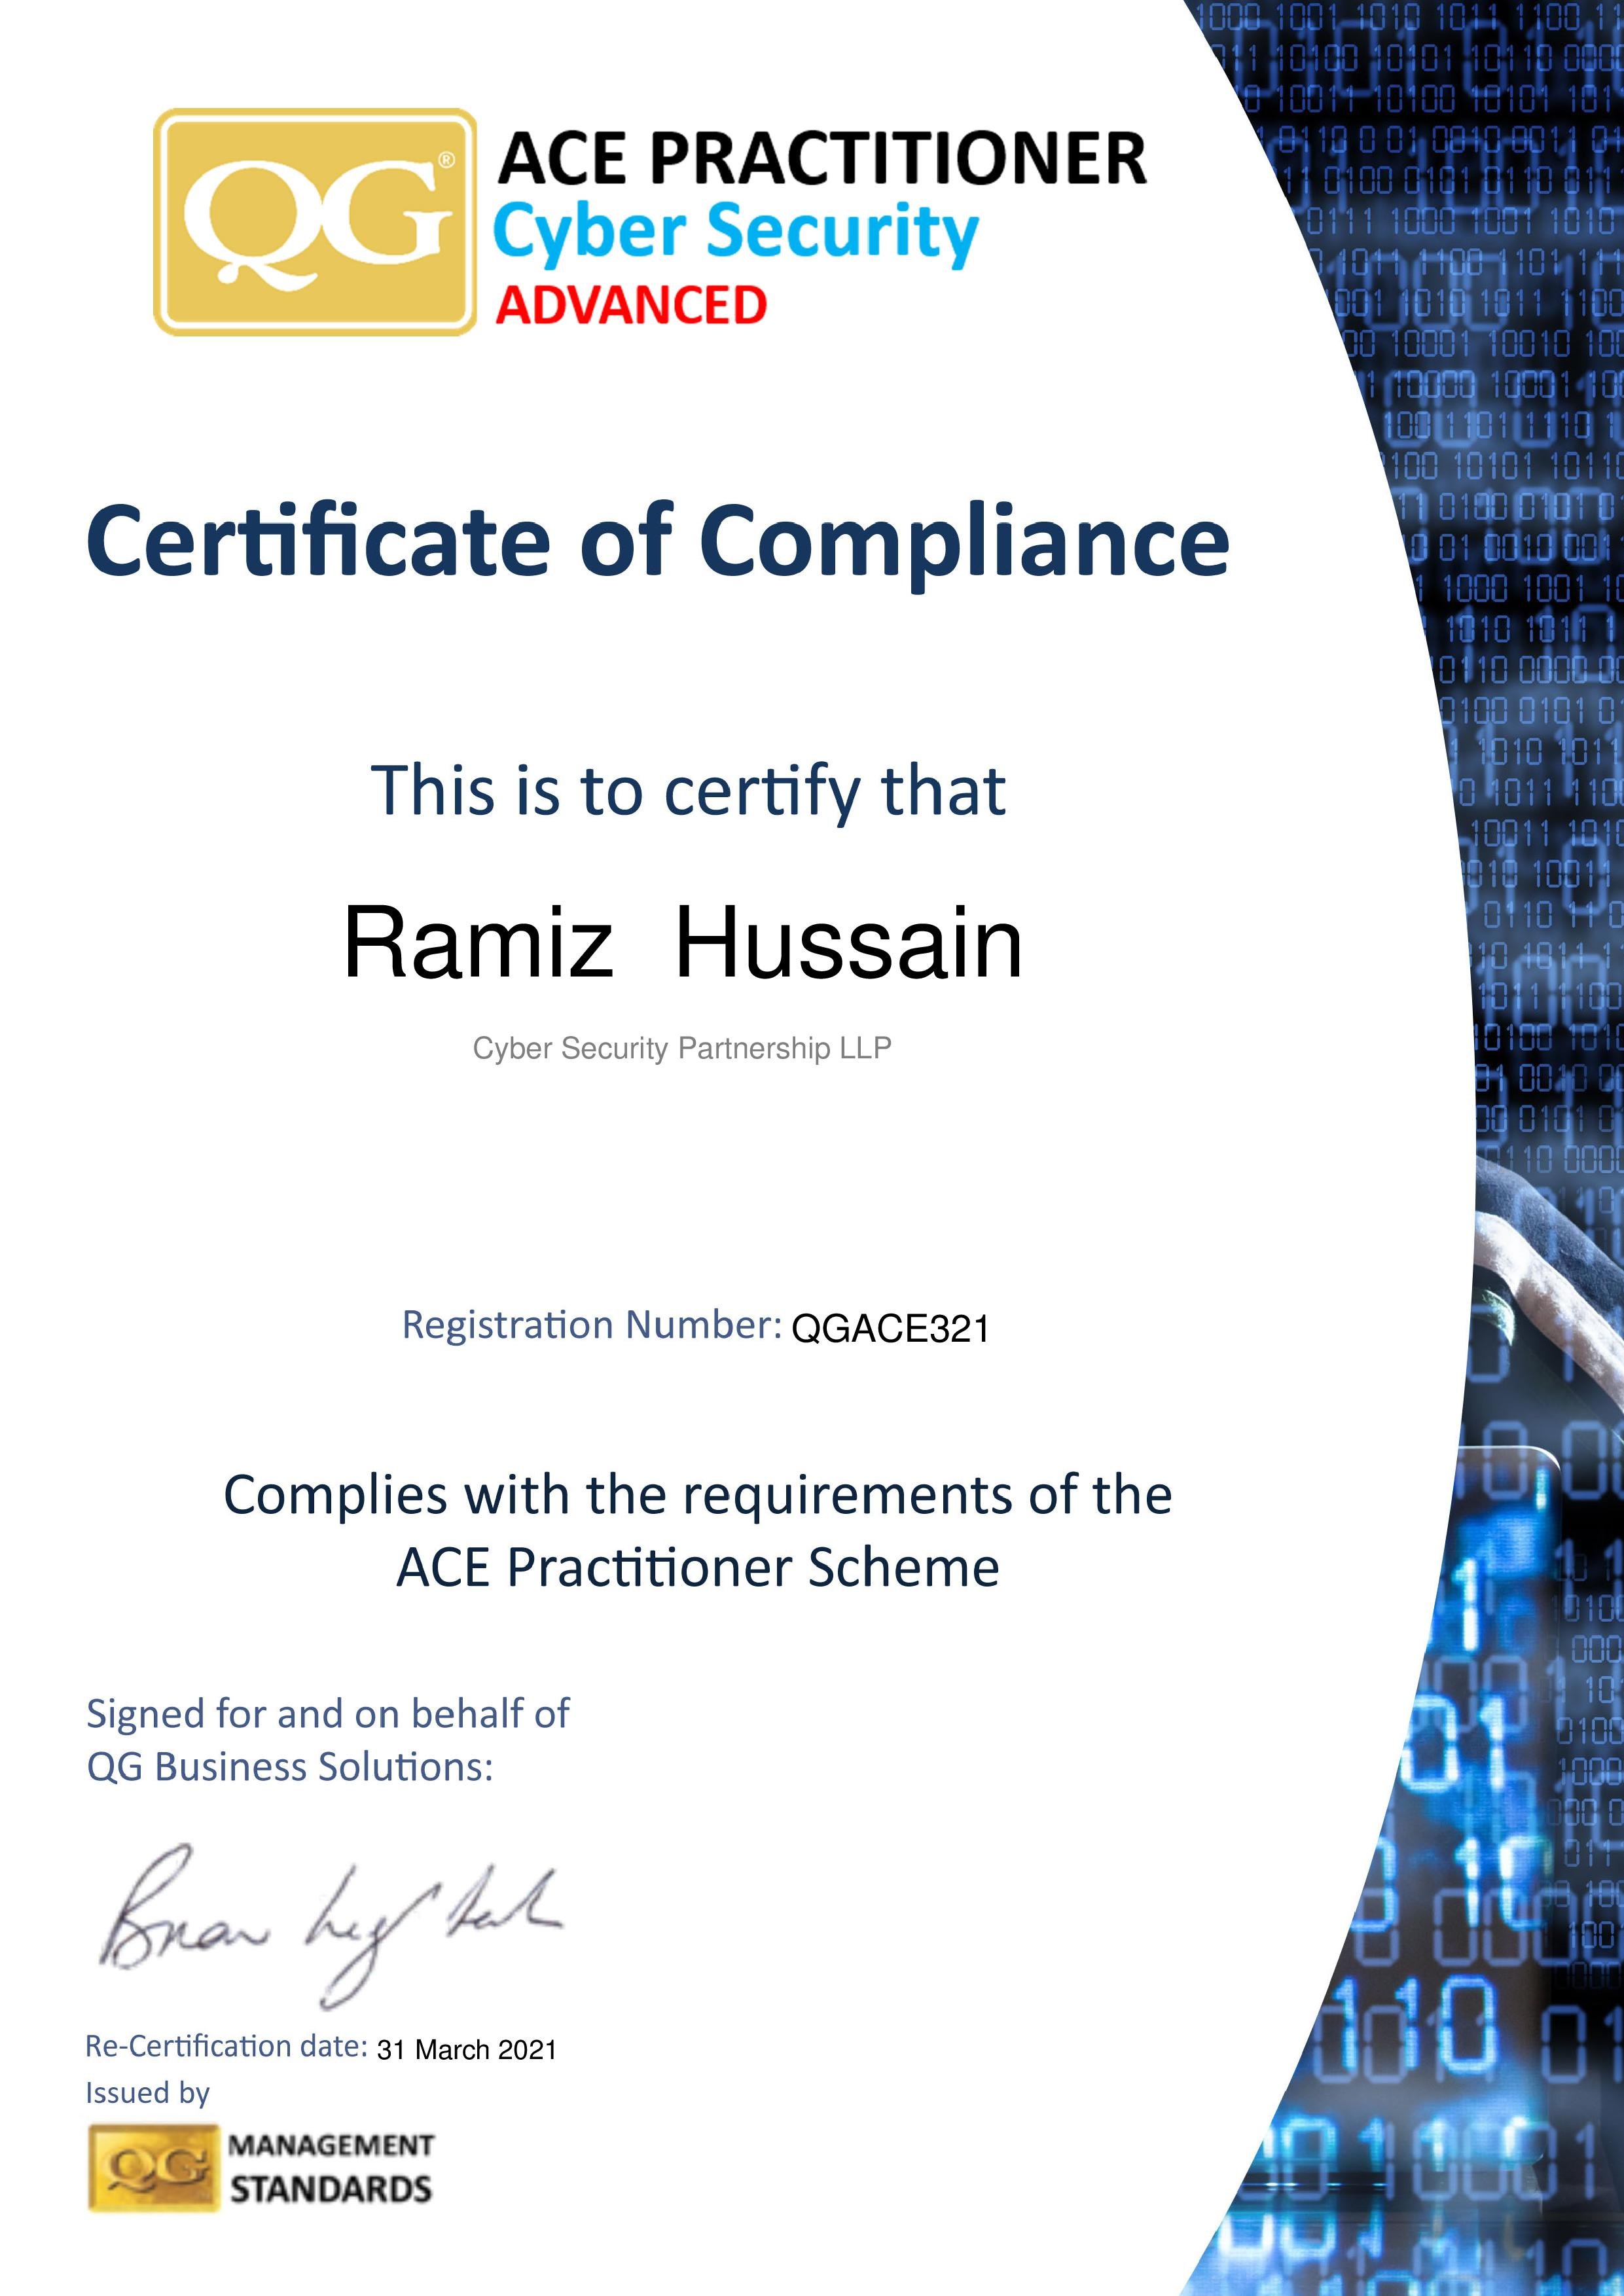 QGACE321 Cyber Security Partnership LLP